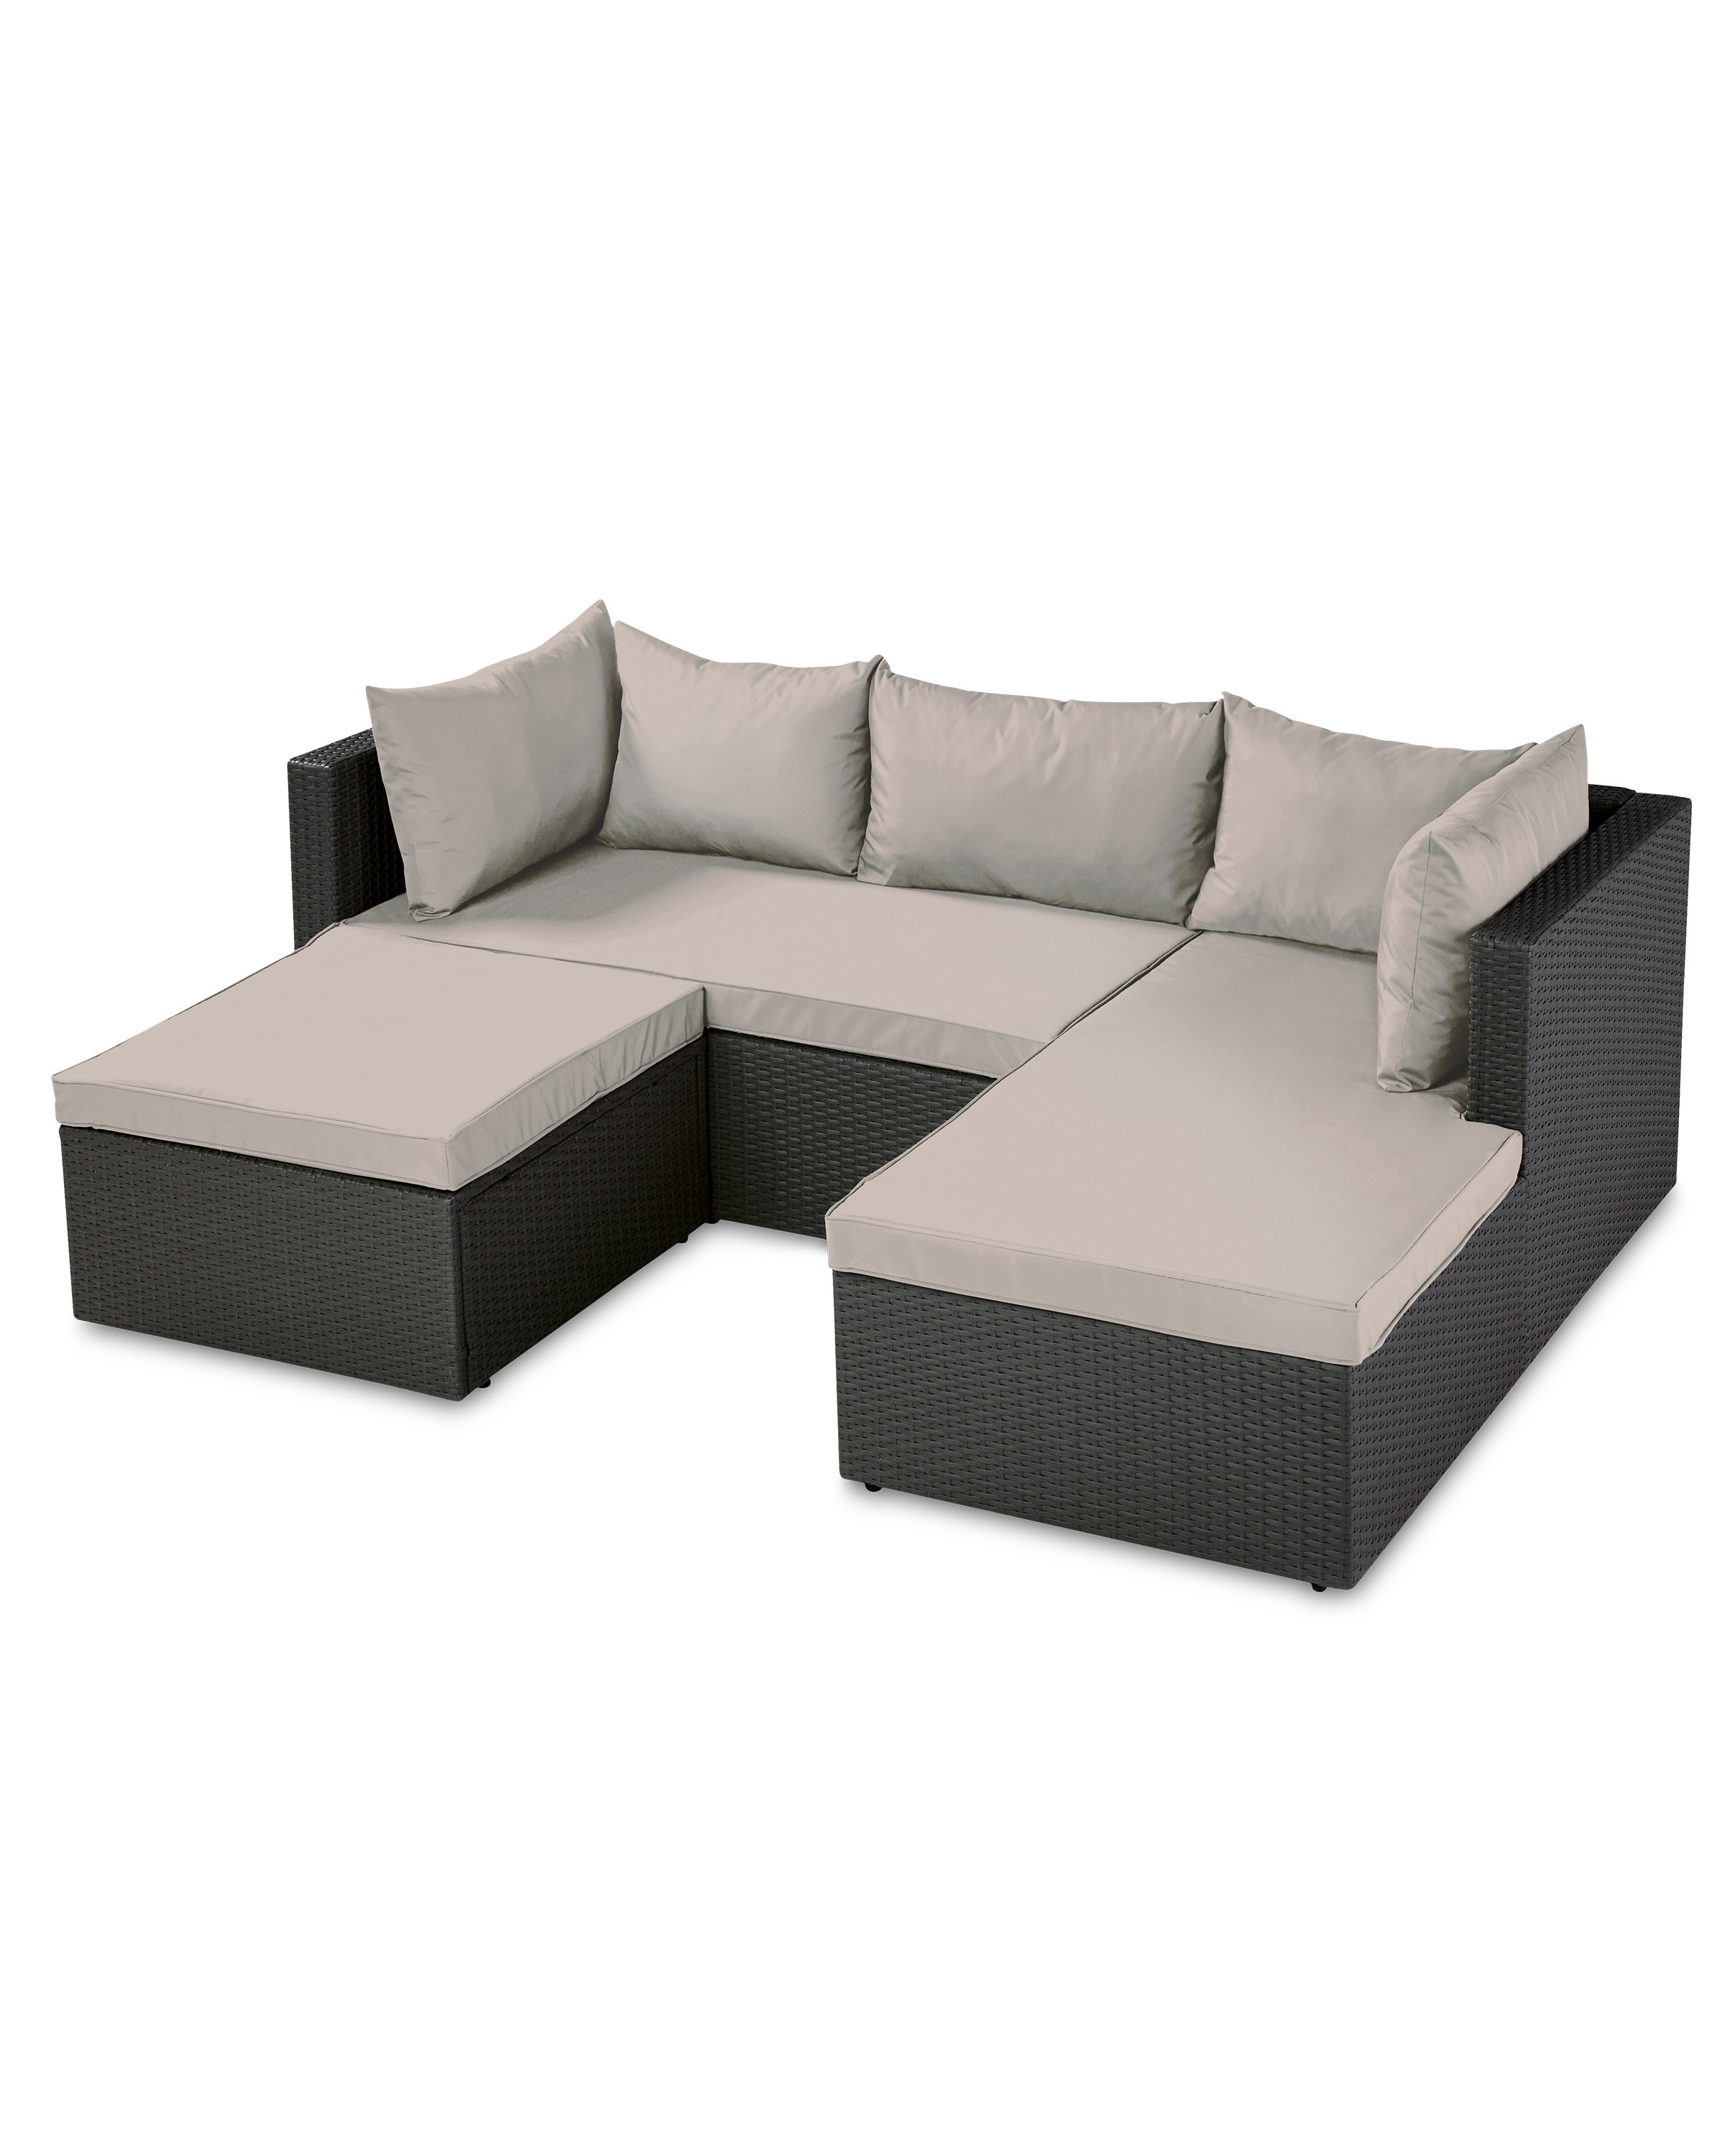 Alexandria Rattan Corner Sofa Reviews: Rattan Furniture Set Aldi